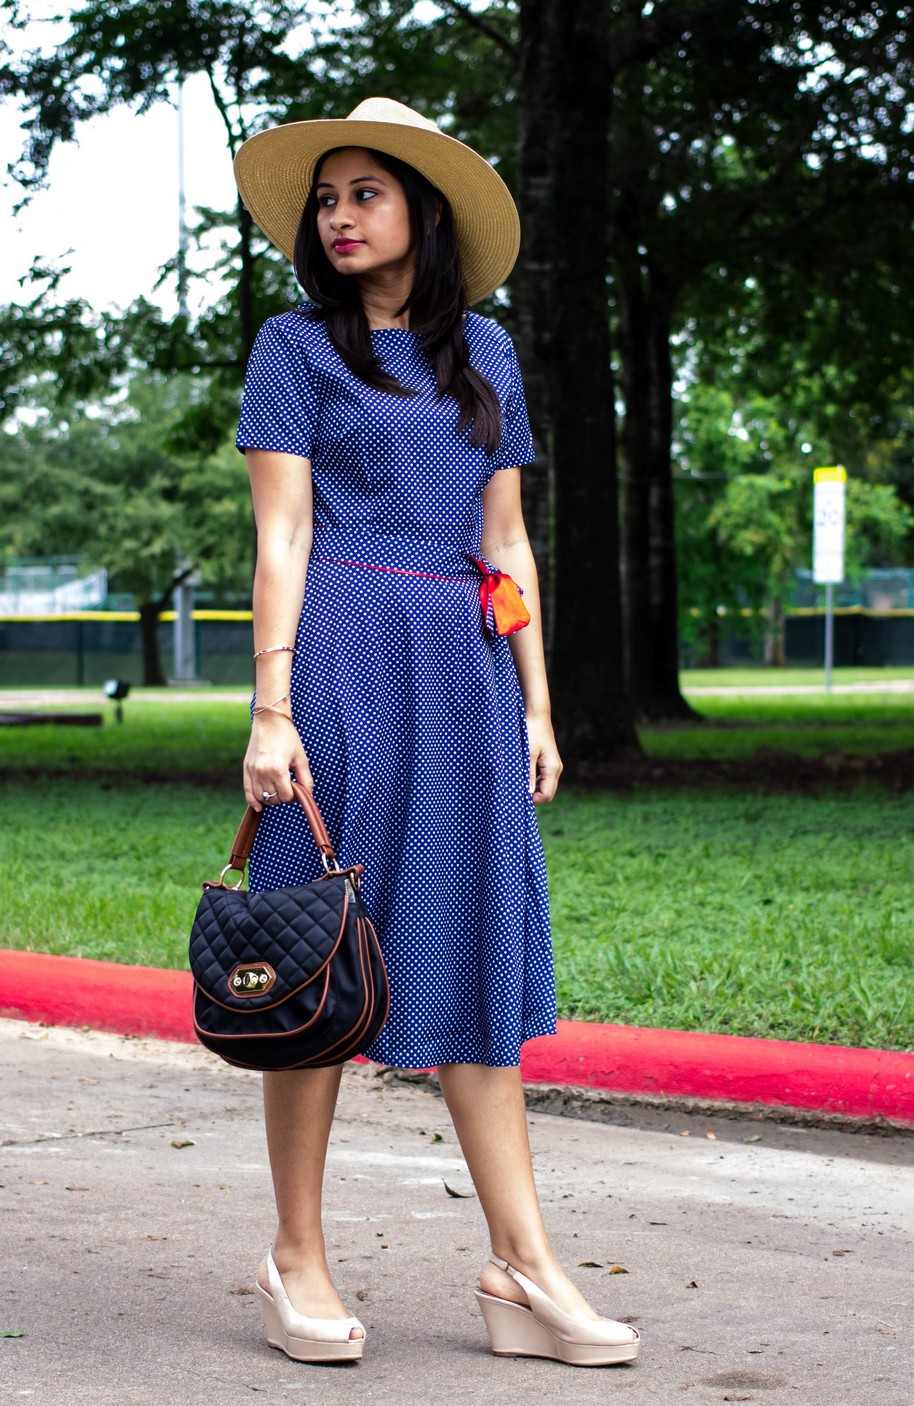 Romwe Polka Dot Dress, Mango hat, Steve Madden bag, Zara wedges - The Vagabond Wayfarer